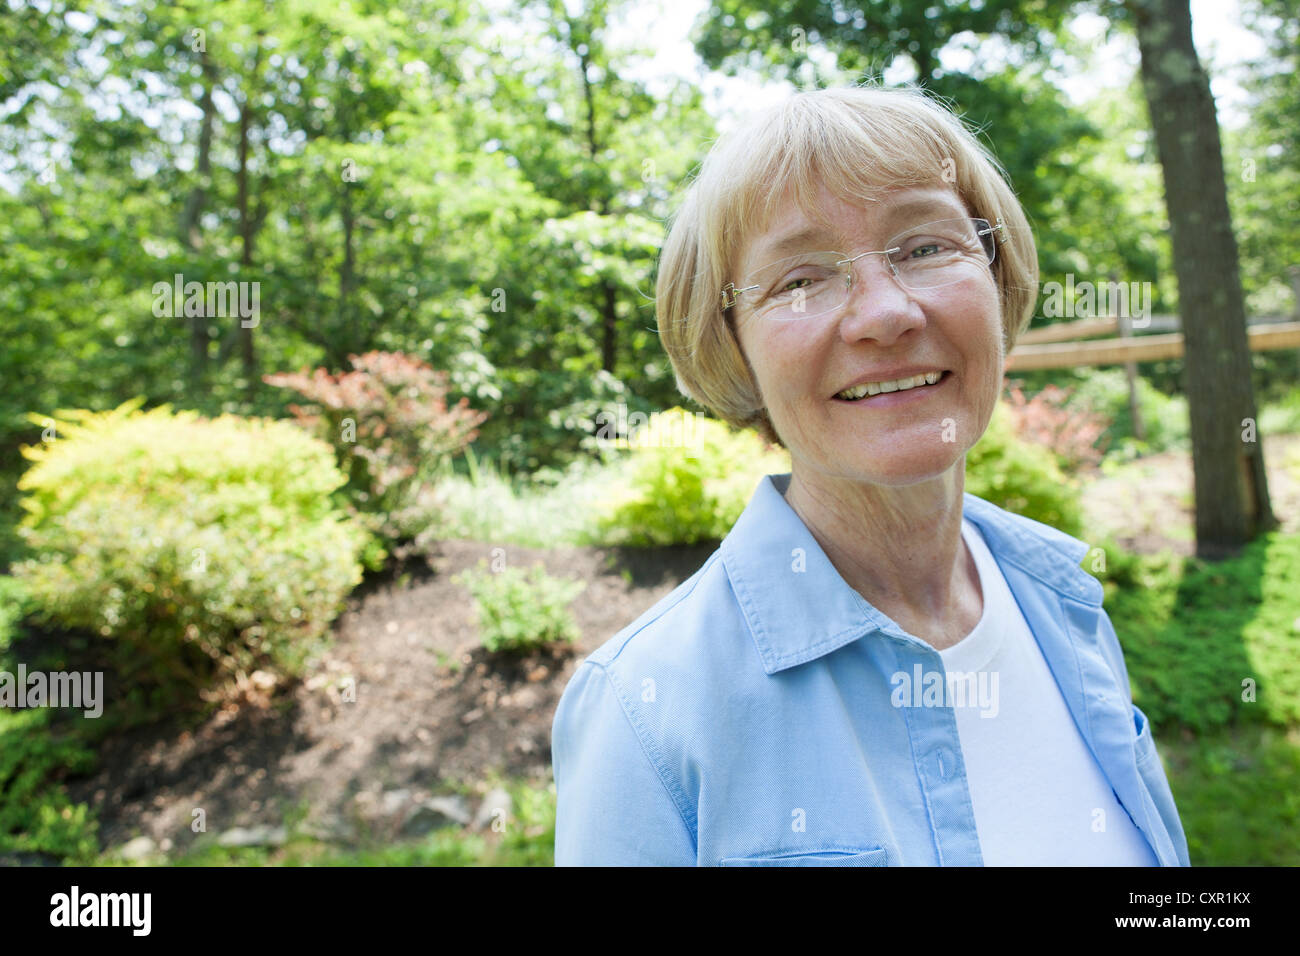 Woman in garden - Stock Image